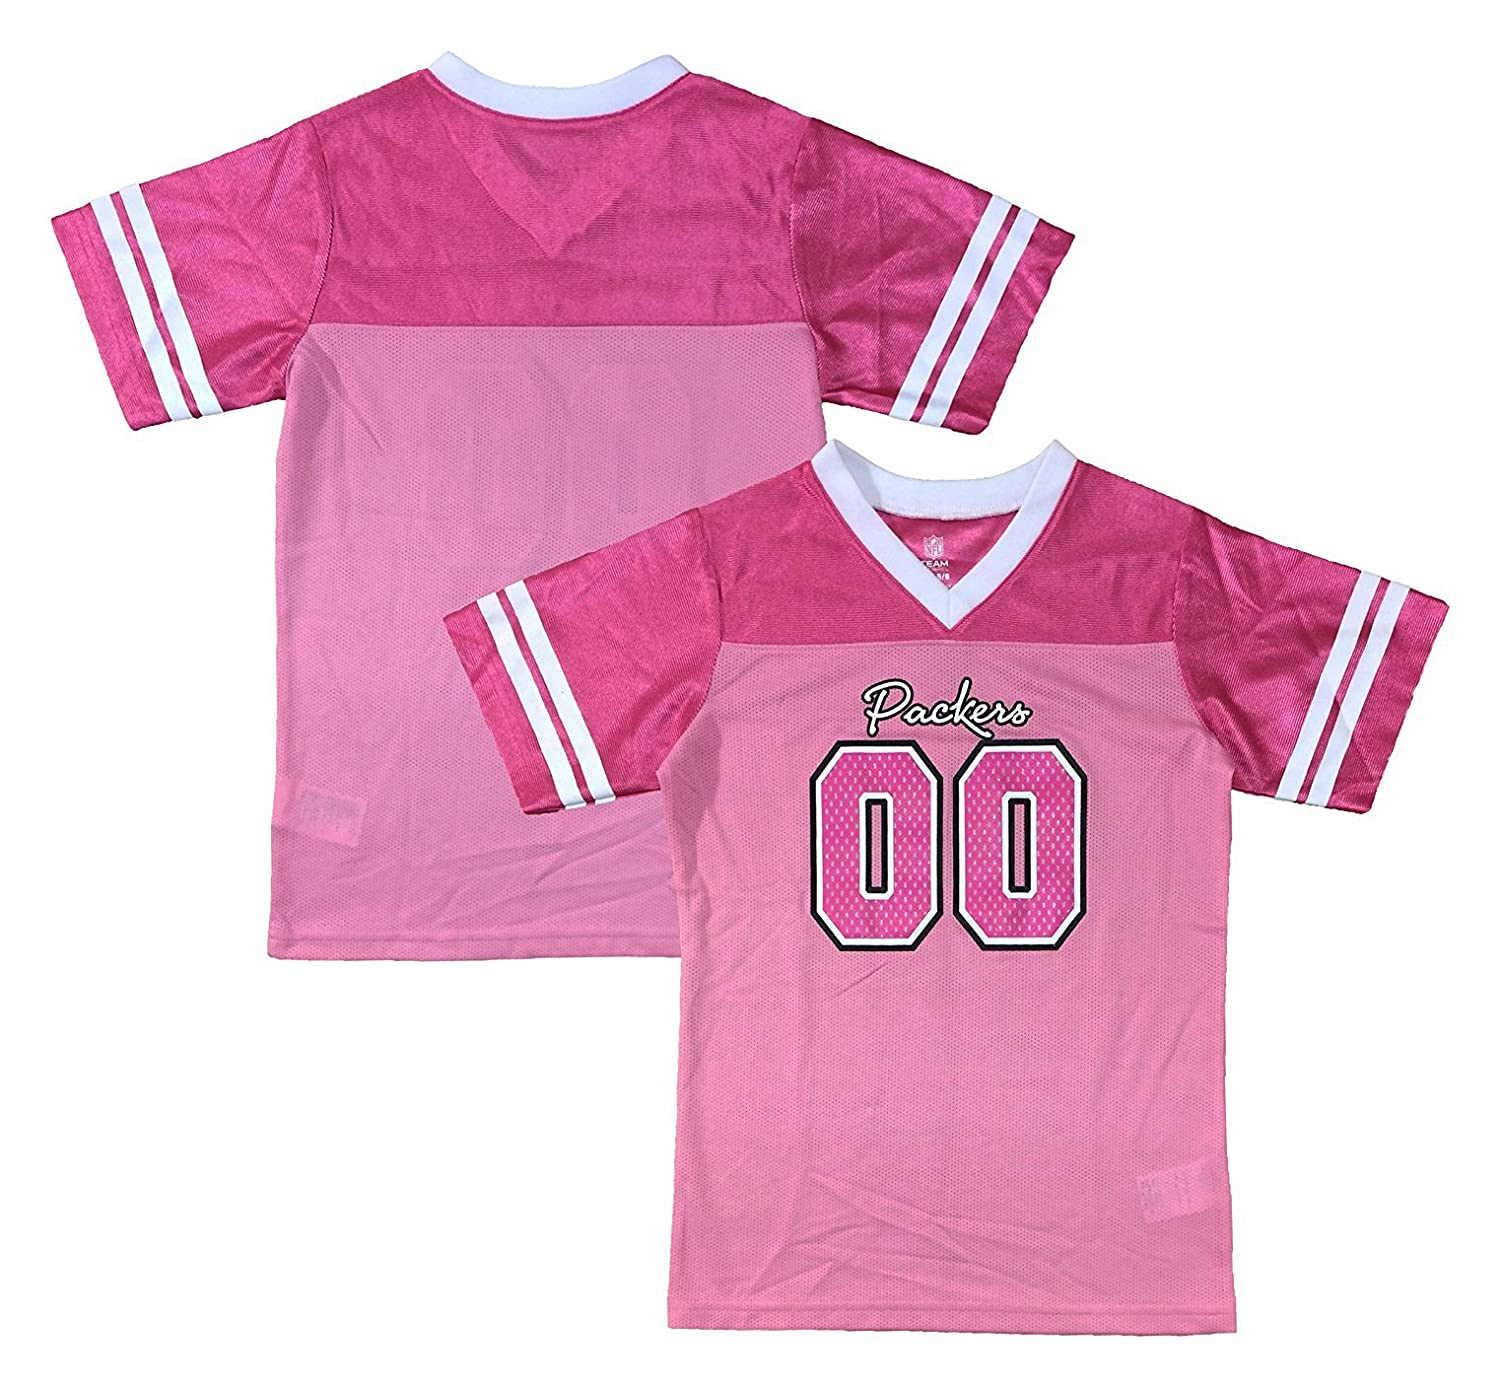 100% authentic 6cfdd f1c9d OuterStuff Green Bay Packers Logo #00 Pink Dazzle Girls Kids ...